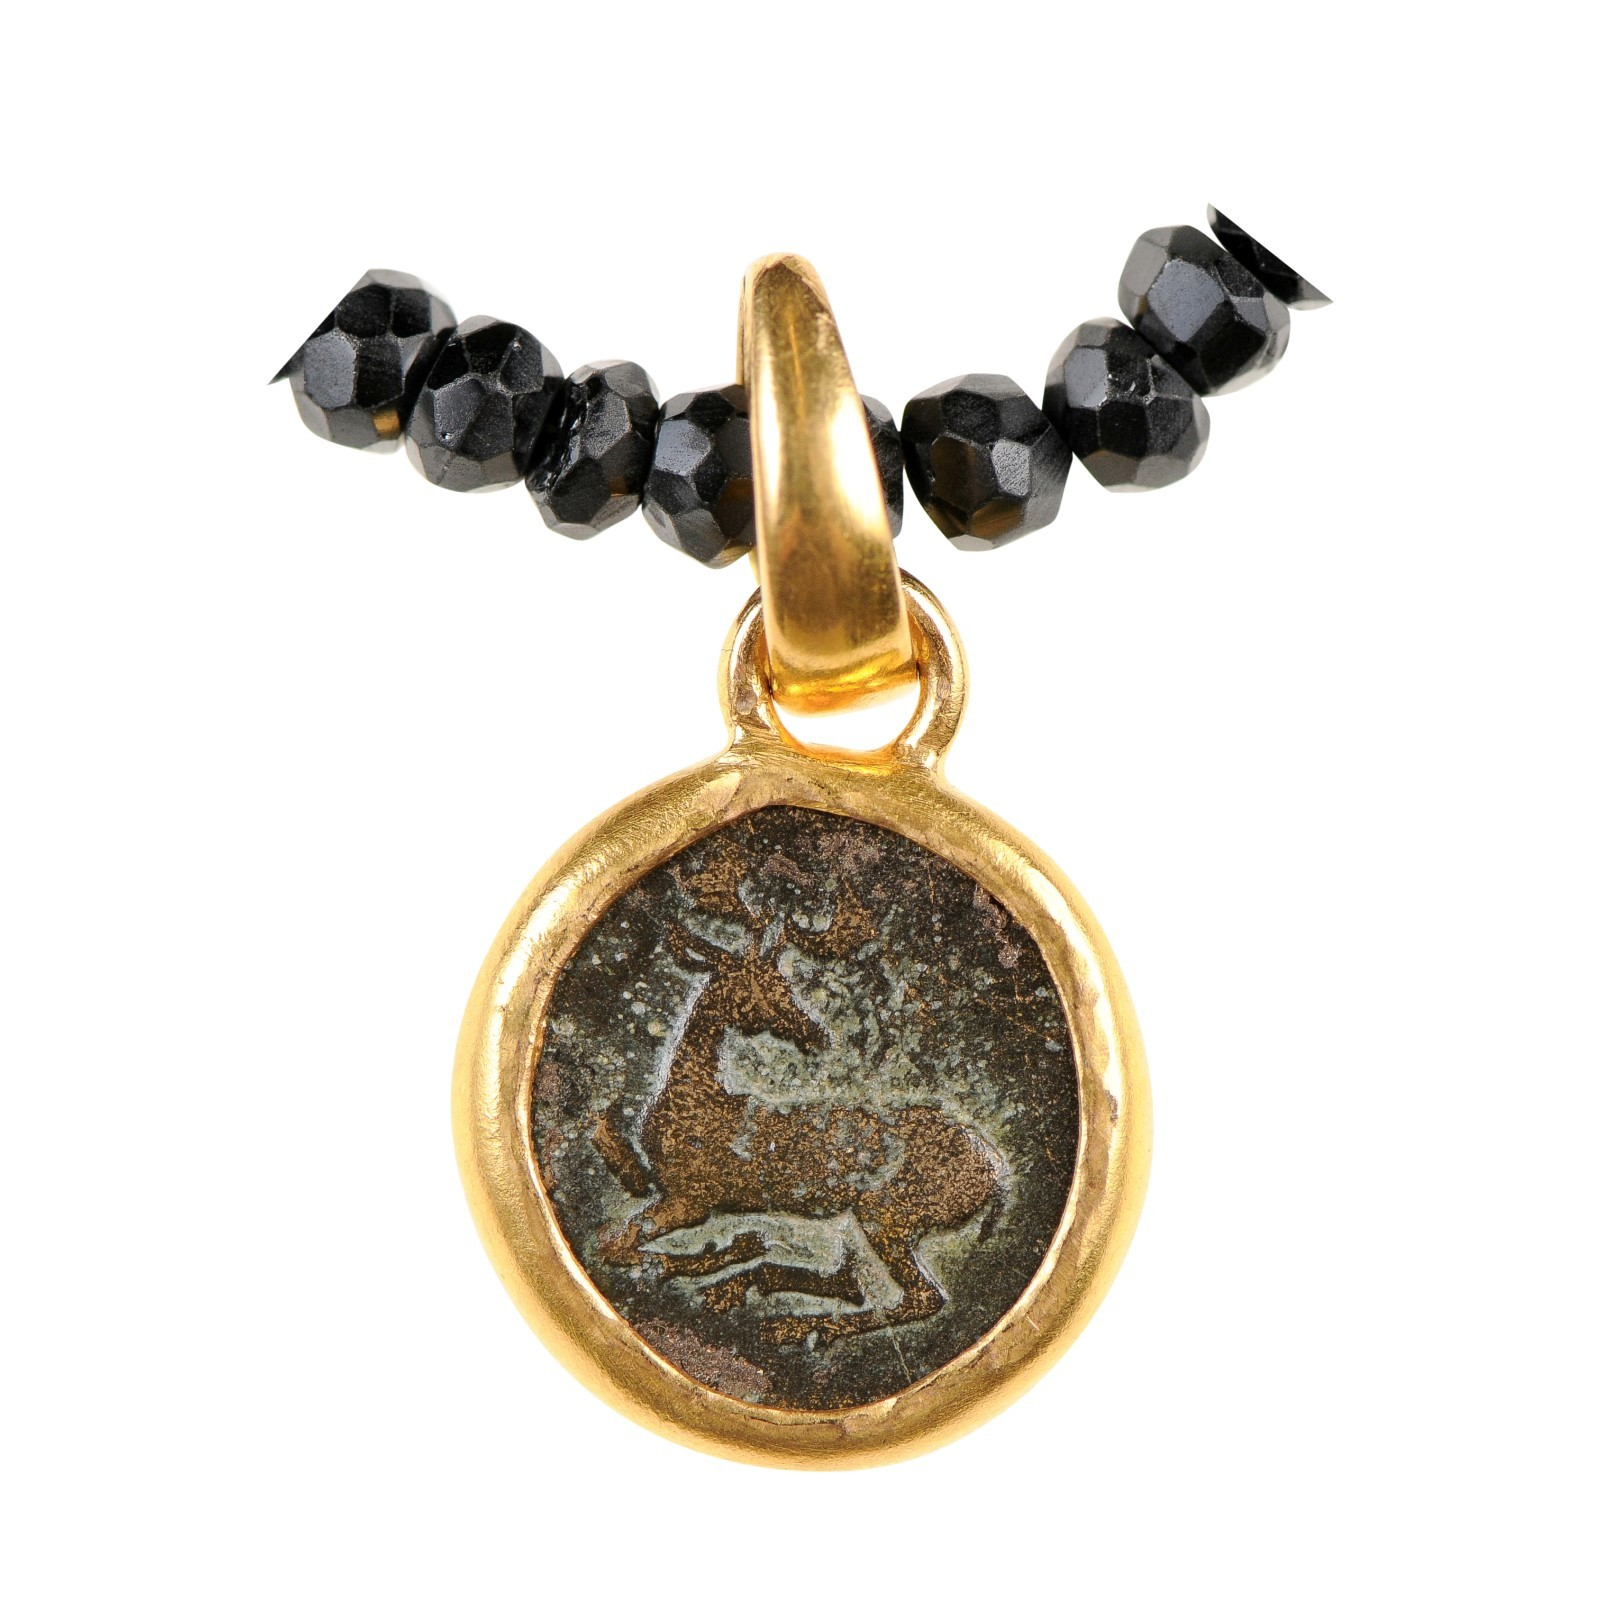 Ancient Bee & Stag Coin in 22k Pendant